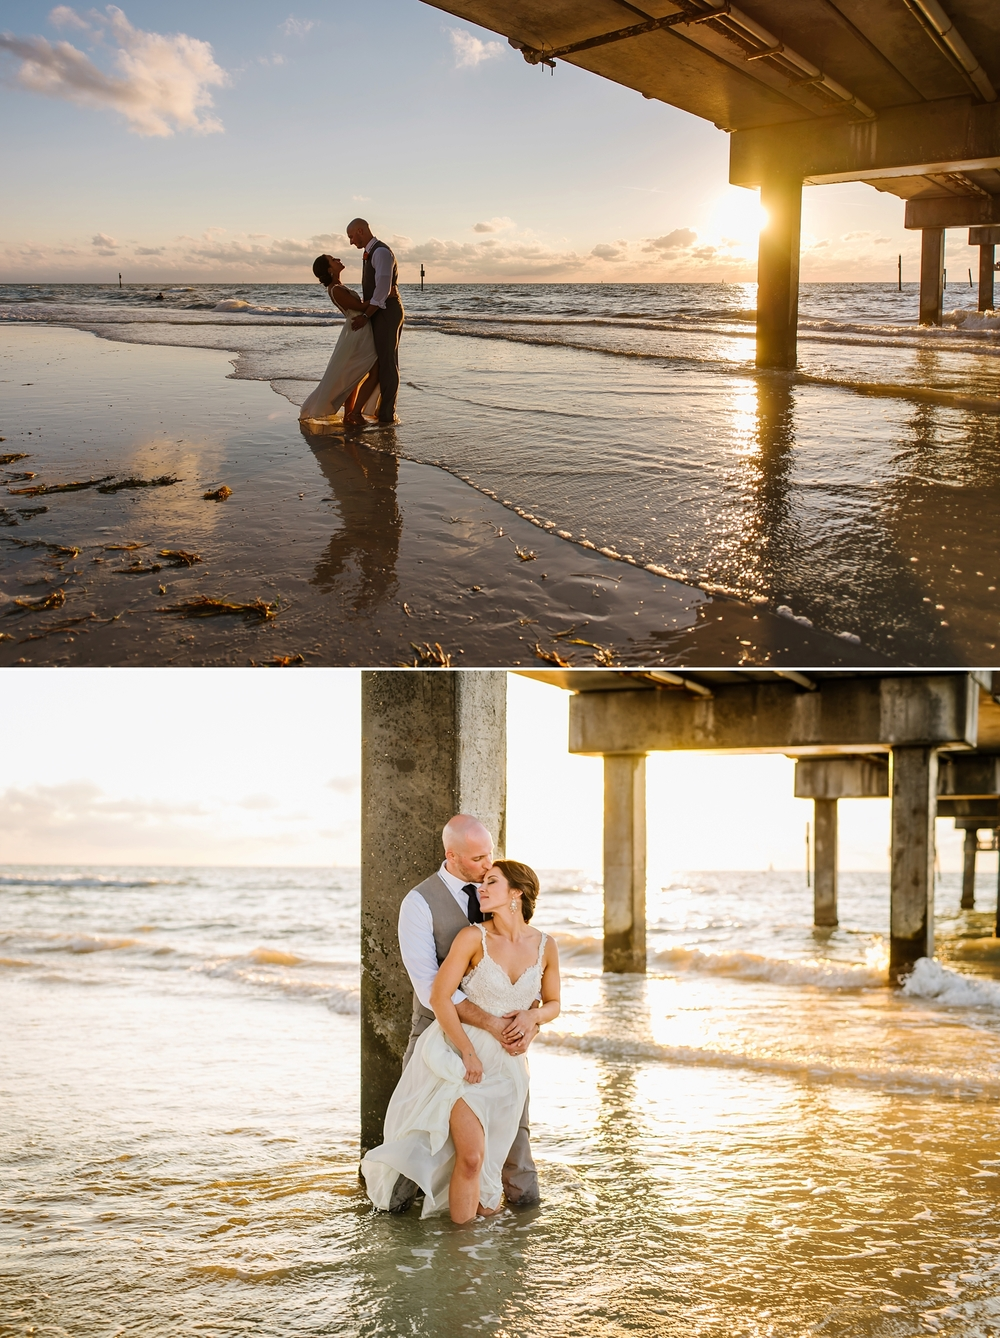 clearwater-beach-wedding-photography-ashlee-hamon_0028.jpg